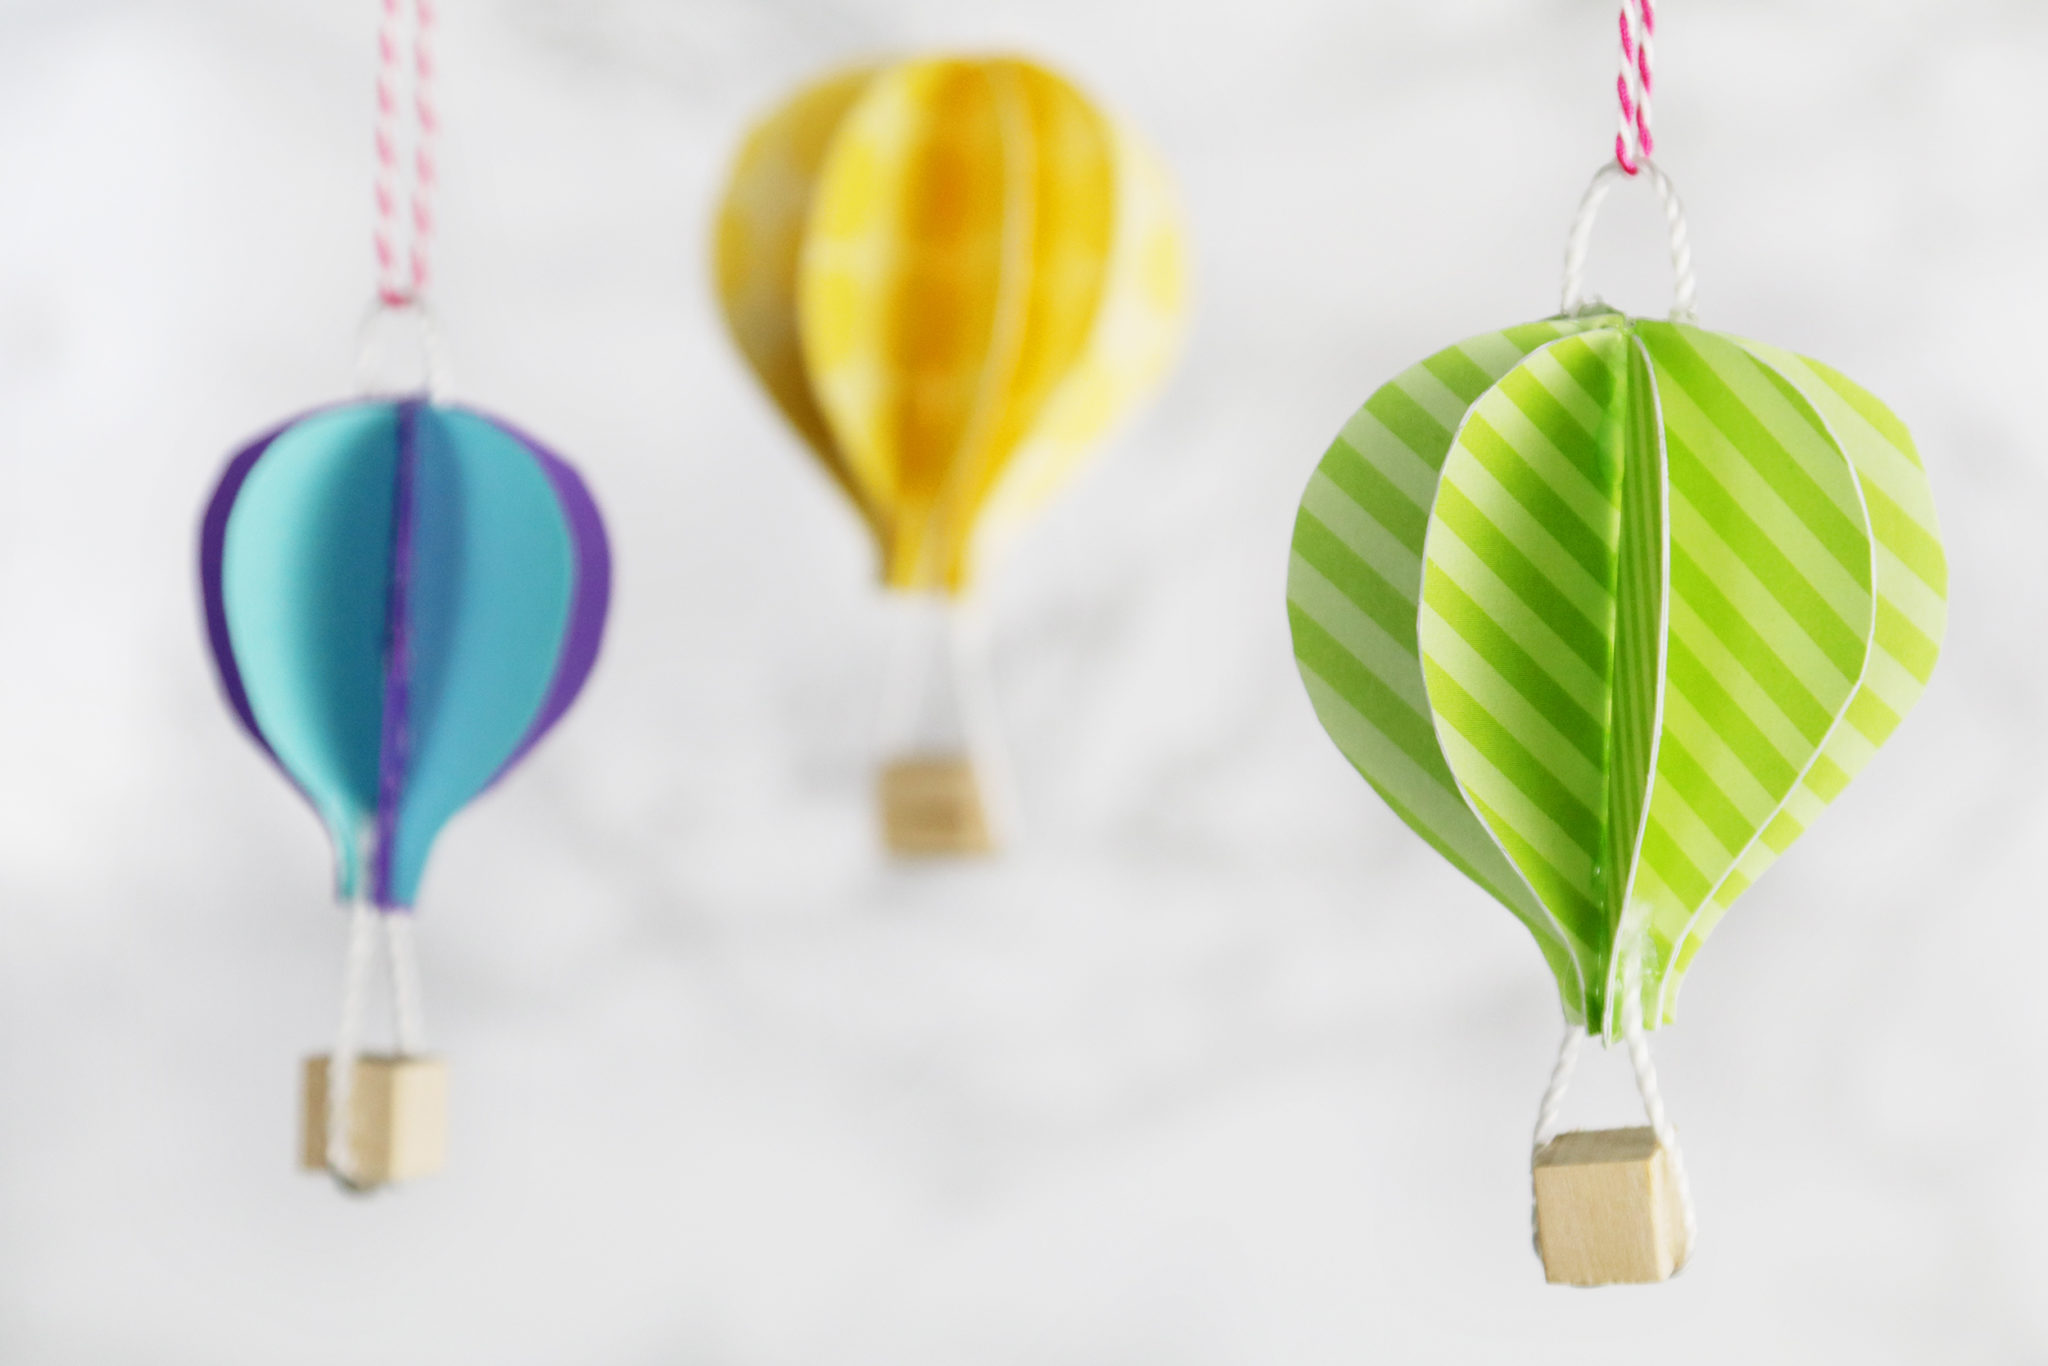 Diy cute paper hot air balloons karen kavett for What can you make with balloons